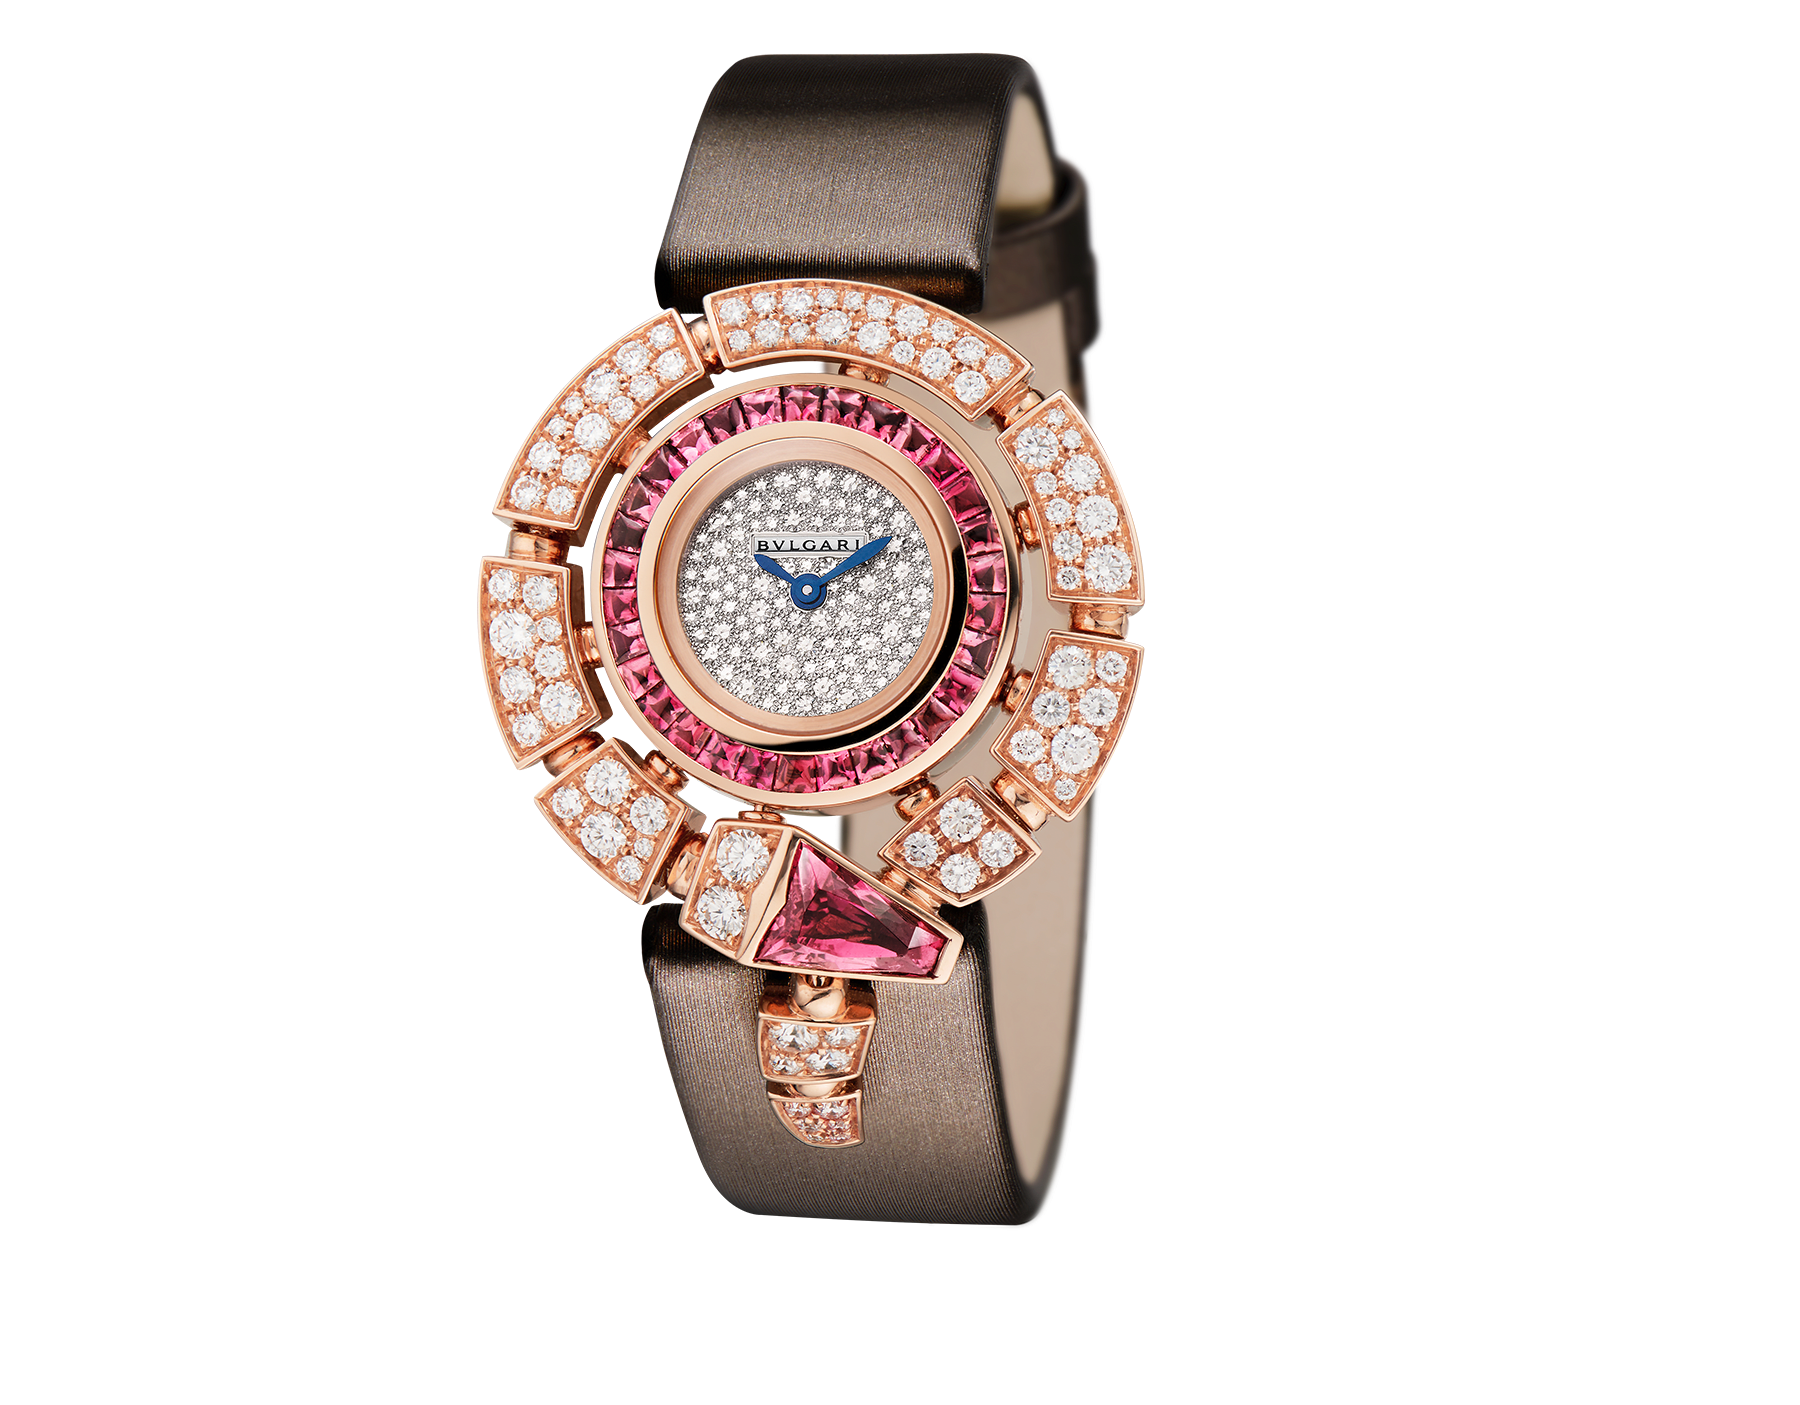 Serpenti Incantati watch with 18 kt rose gold case set with brilliant cut diamonds and rubellites, snow-pavé diamond dial and brown satin bracelet. 102537 image 1